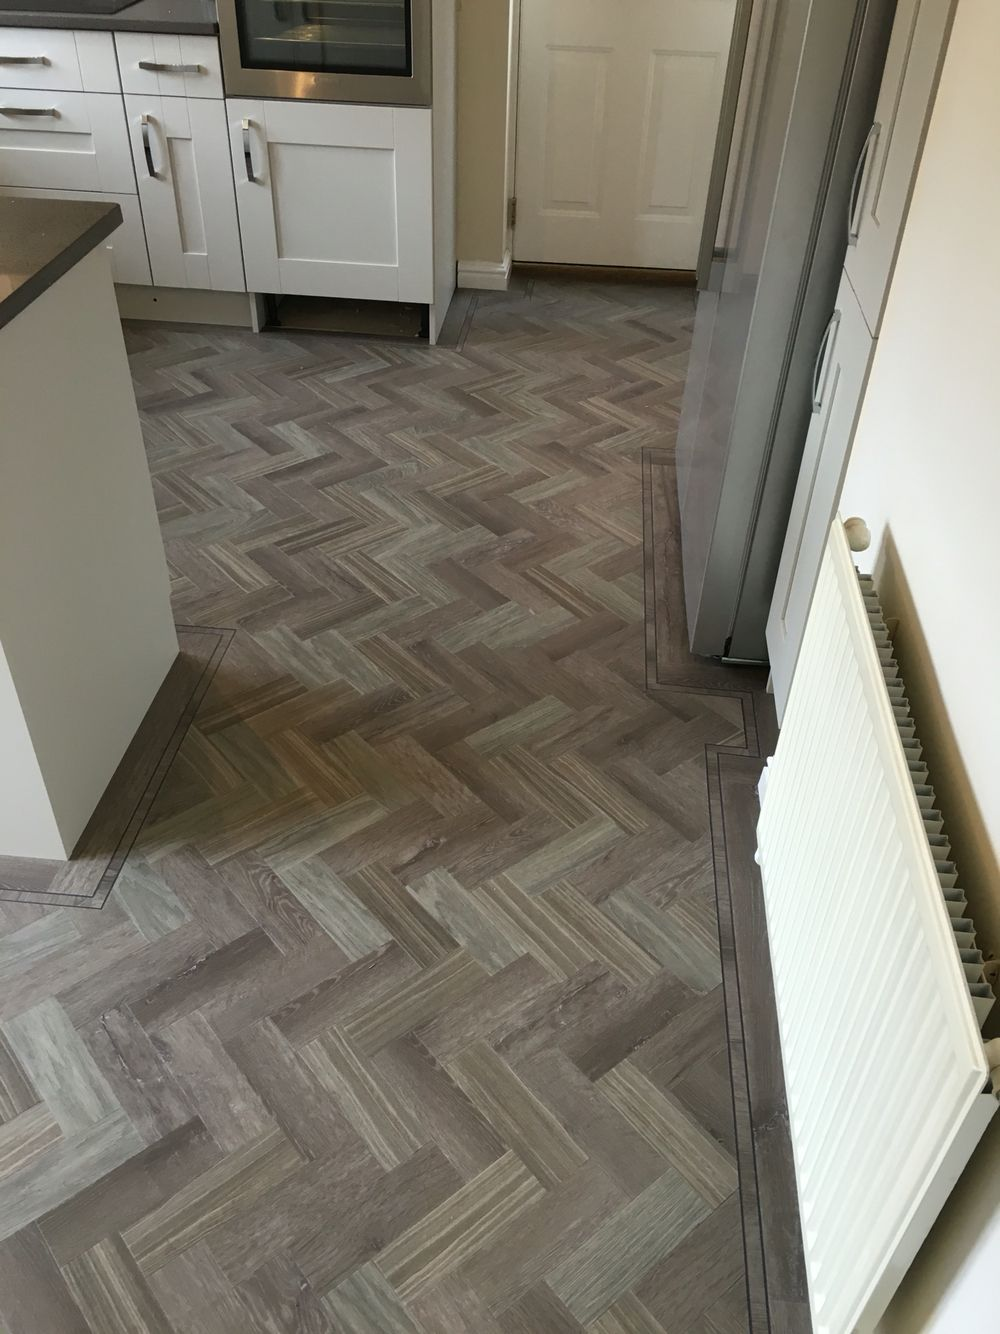 3 different colours layers in a parquet design. Complete